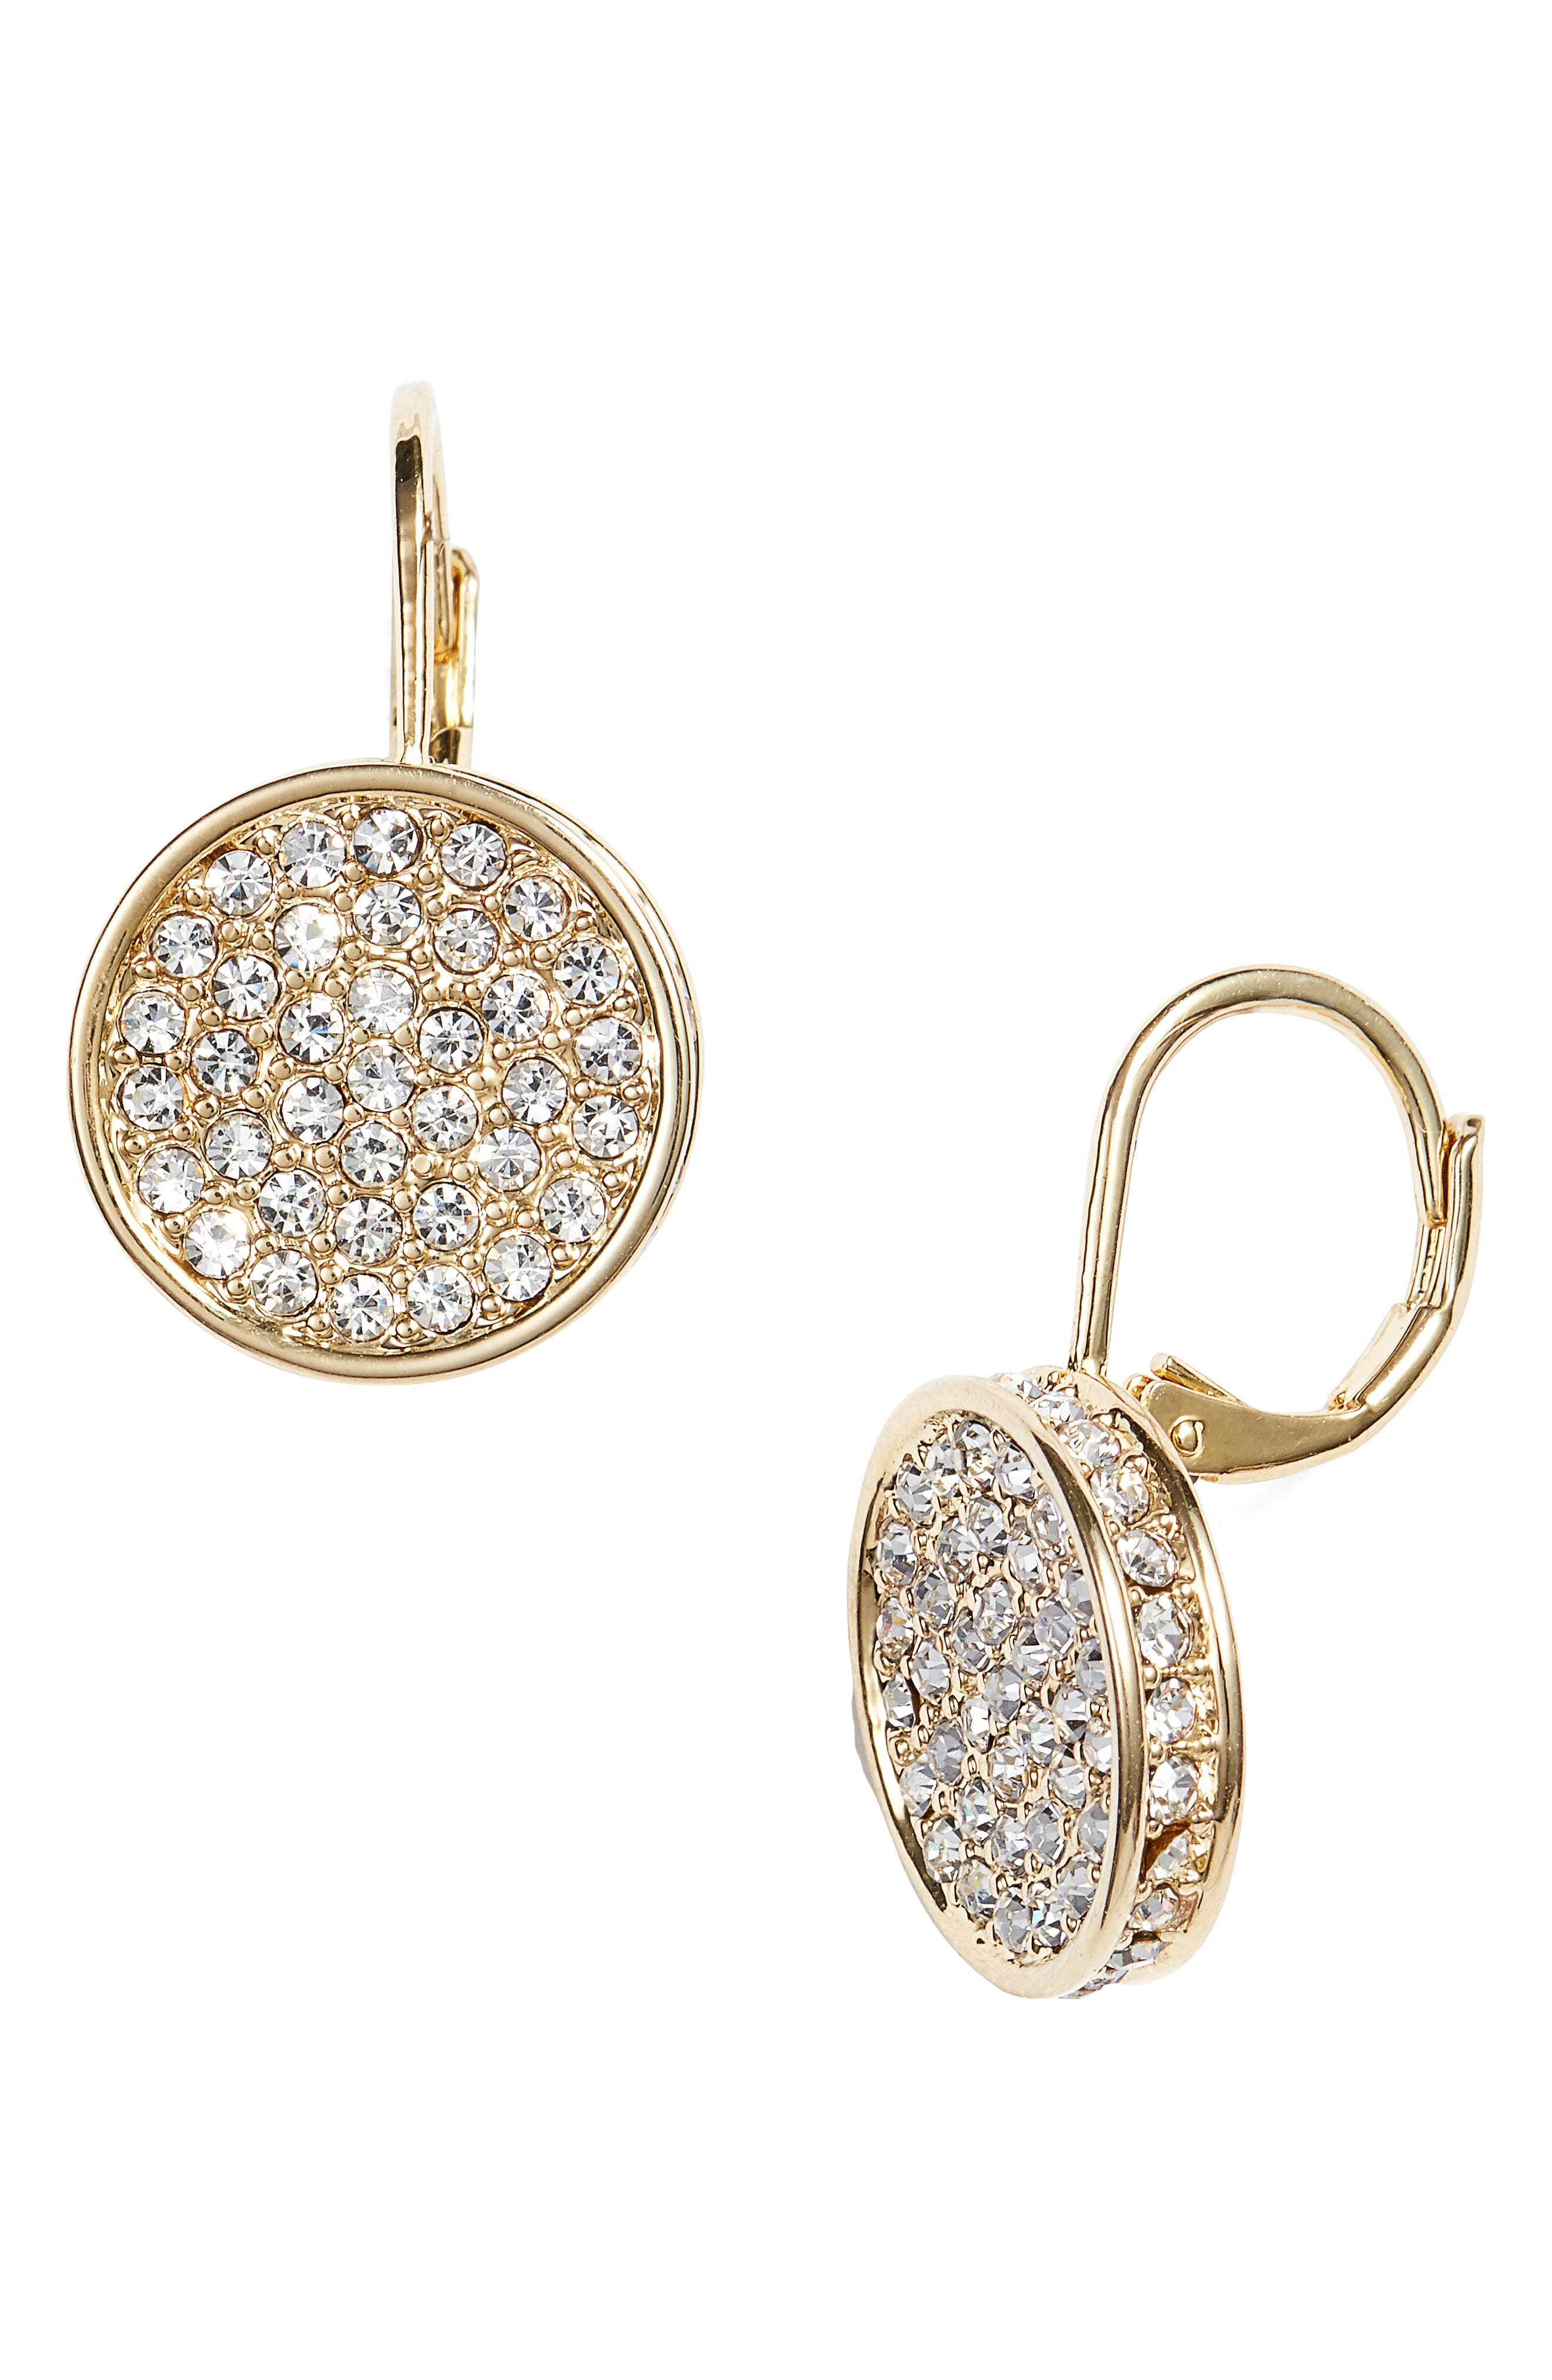 Main Image - Vince Camuto Crystal Glitter Earrings